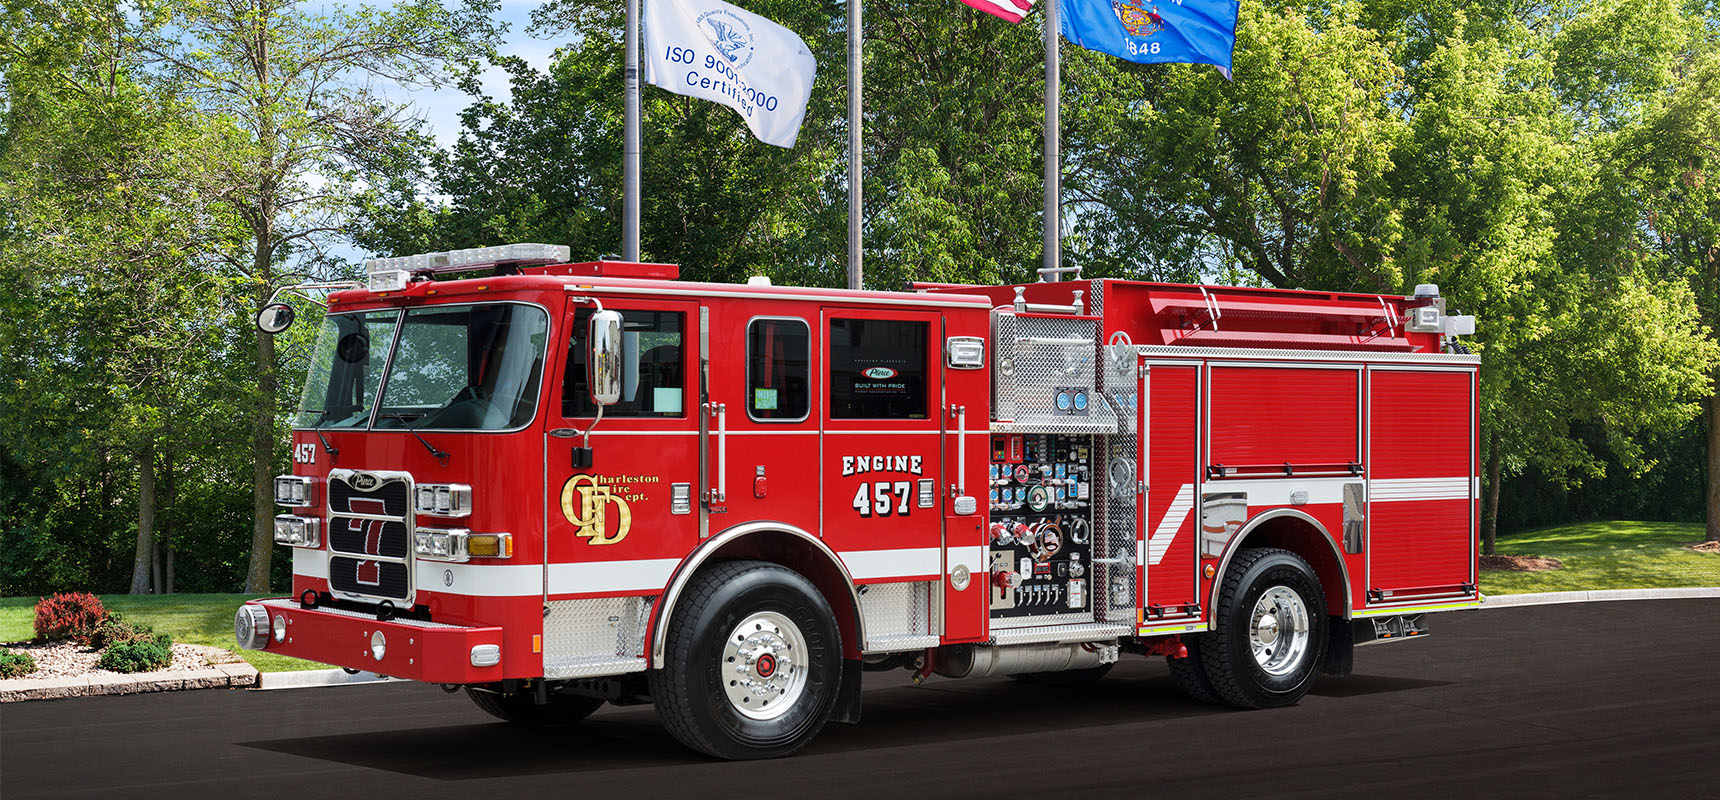 Finley Fire Equipment has secured an order for two Pierce Arrow XT pumpers for Charleston, WV Fire Department